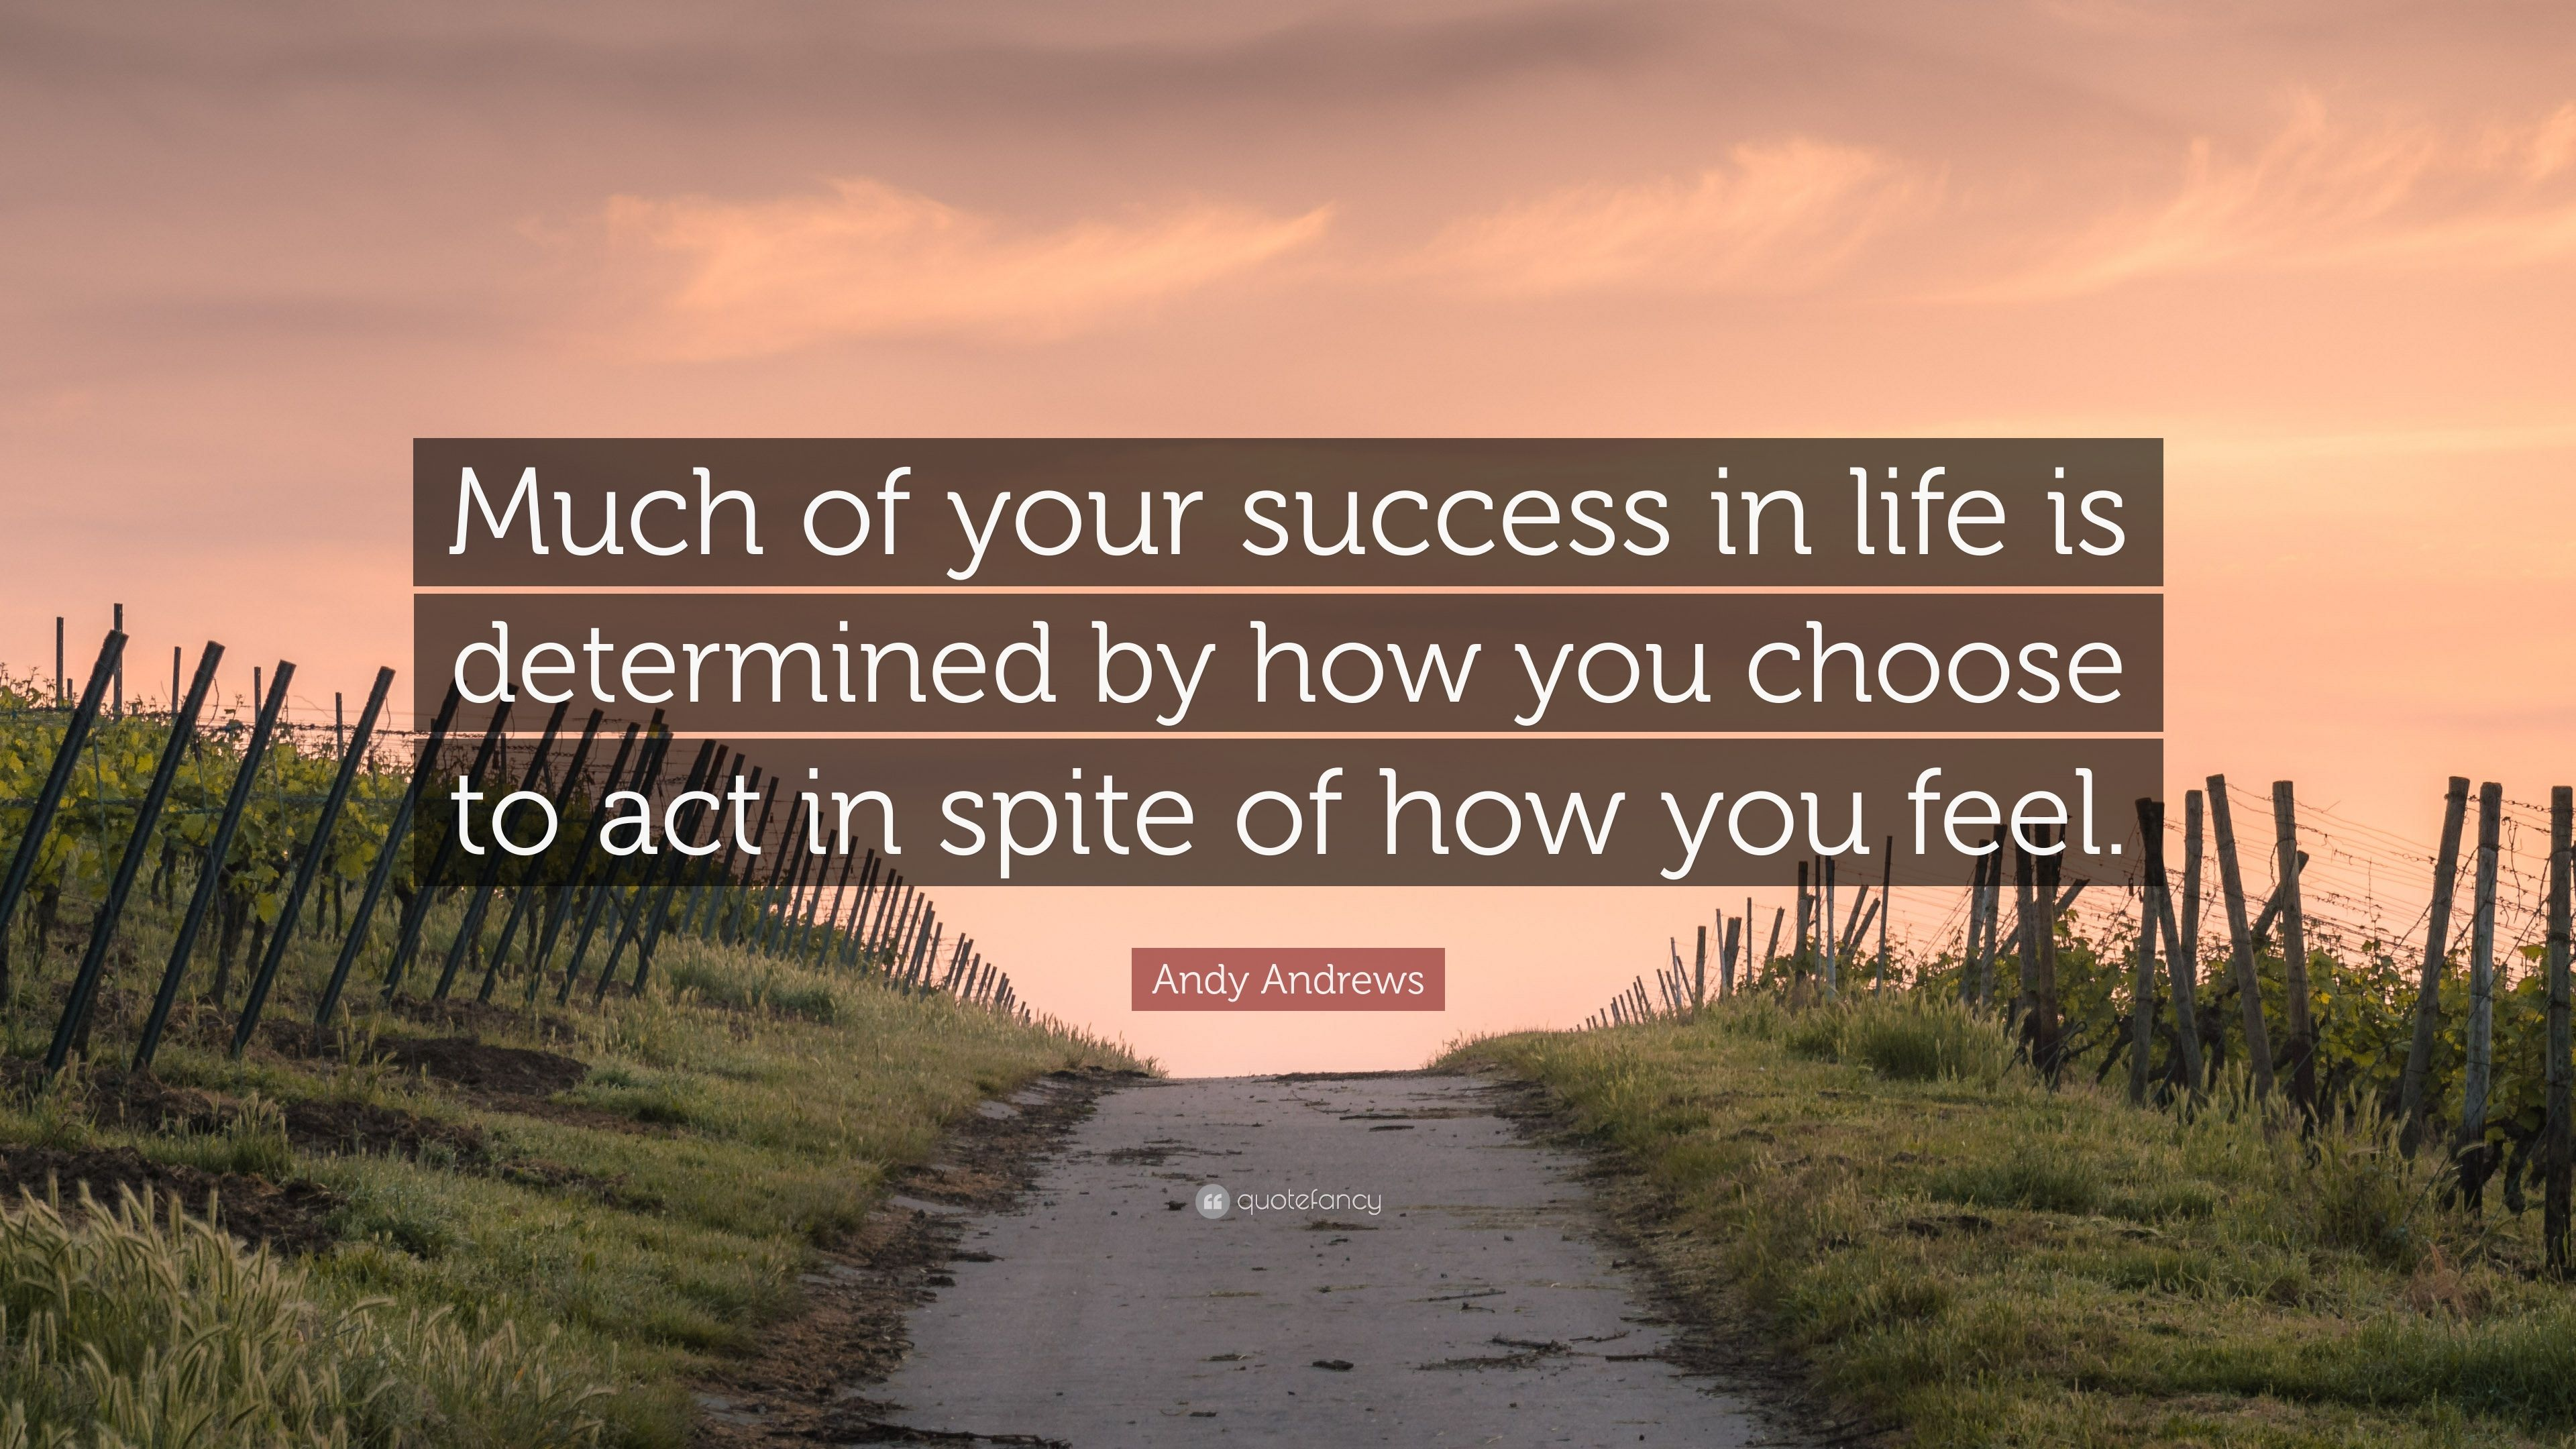 Image result for much of your success in life is determined by how you choose to act in spite of how you feel